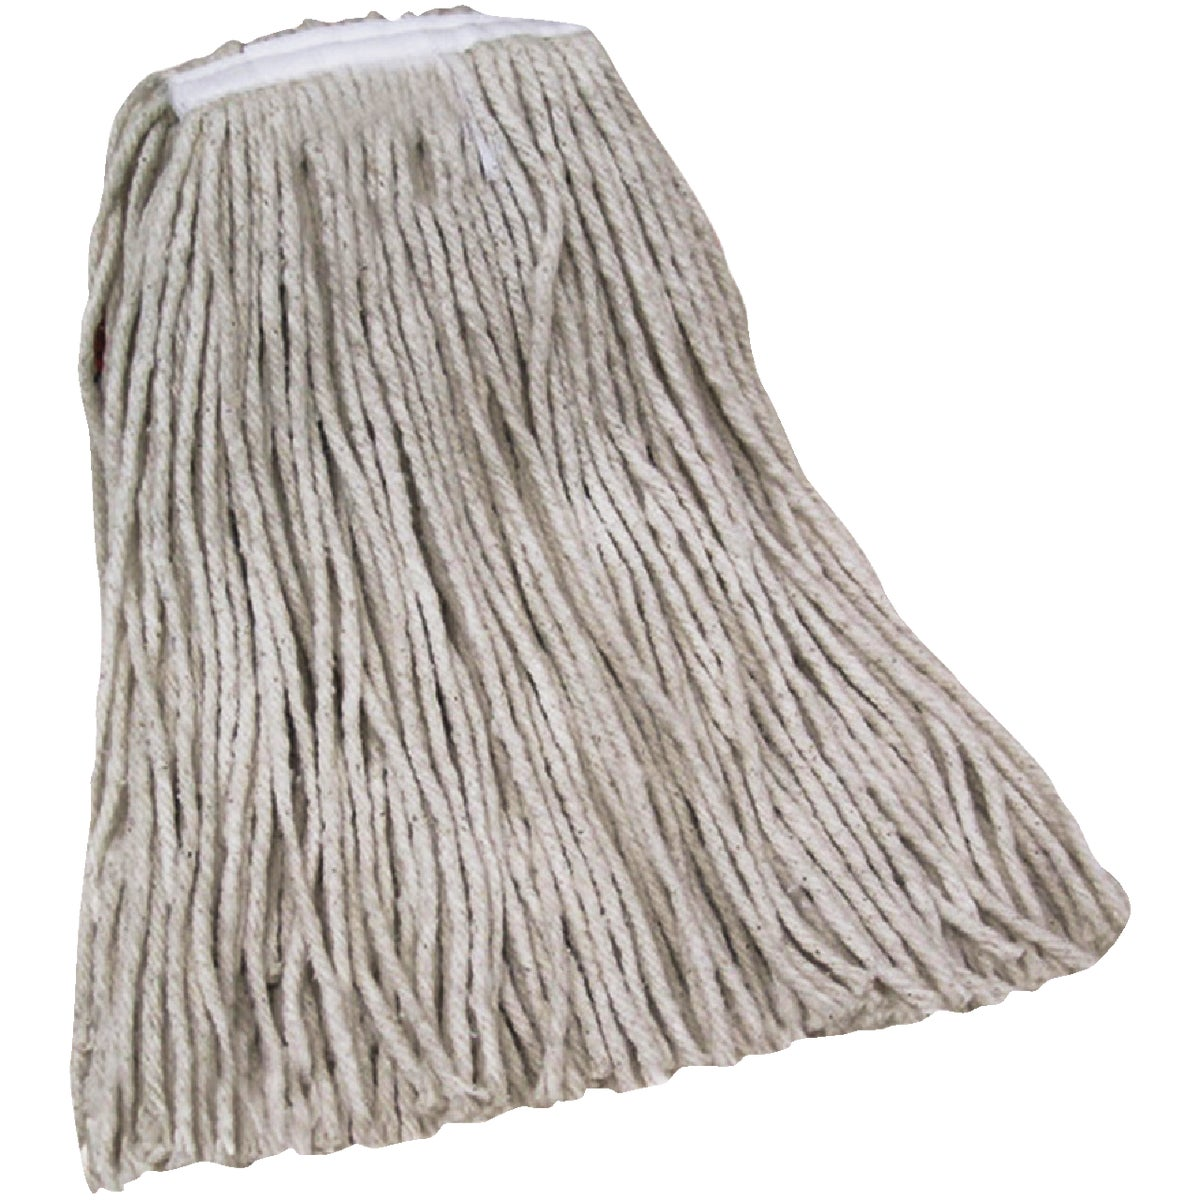 32OZ WORKHORS COTTON MOP - 642312 by Nexstep Commercial